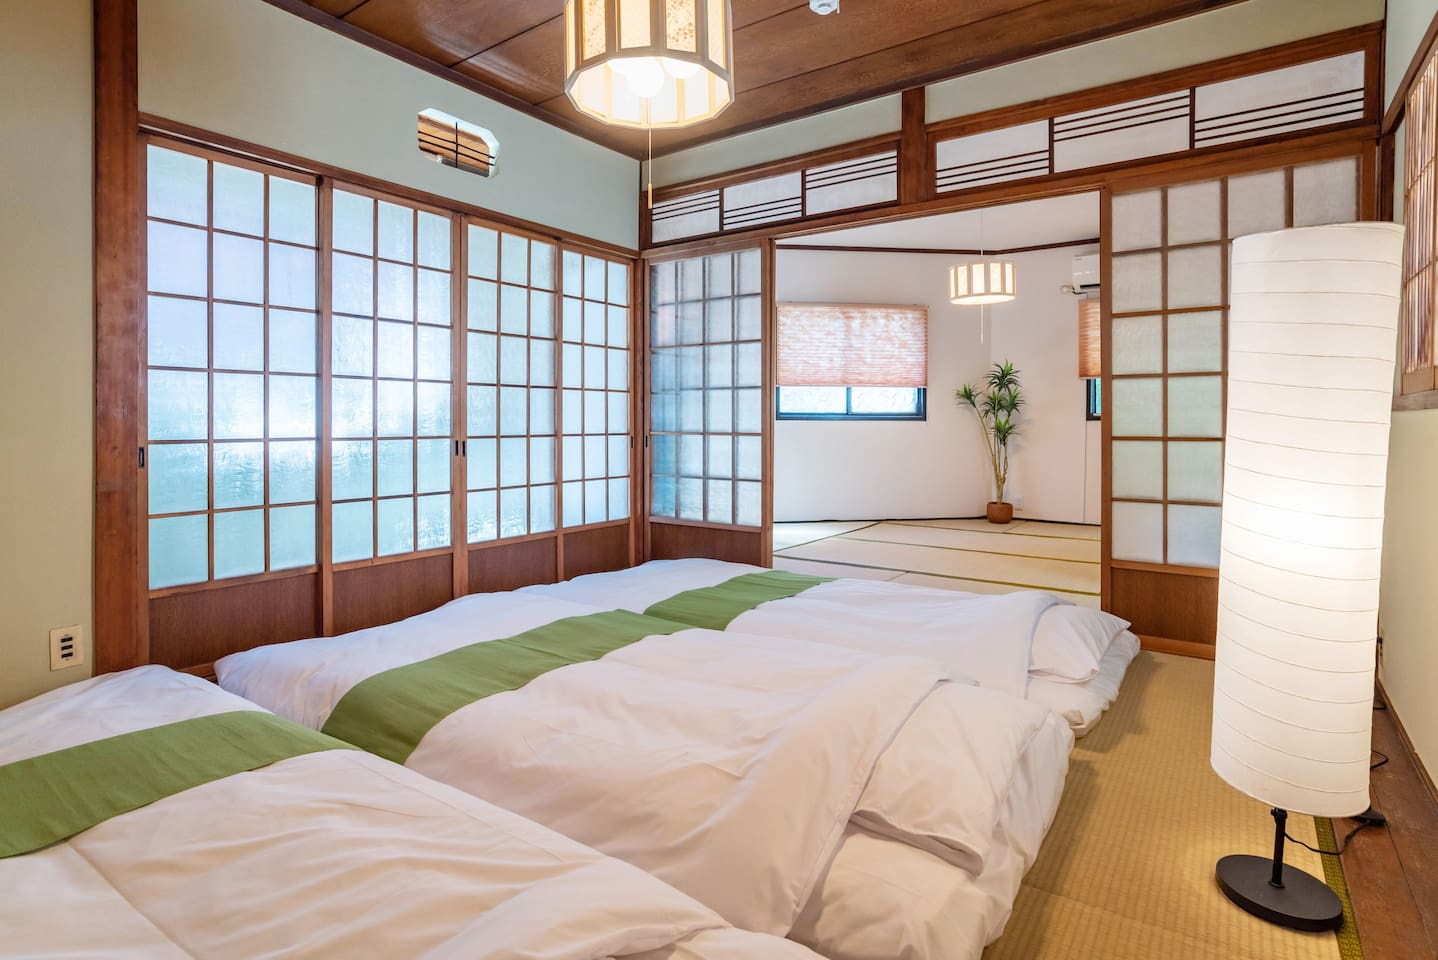 2F bedroom. Traditional Japanese-style room.